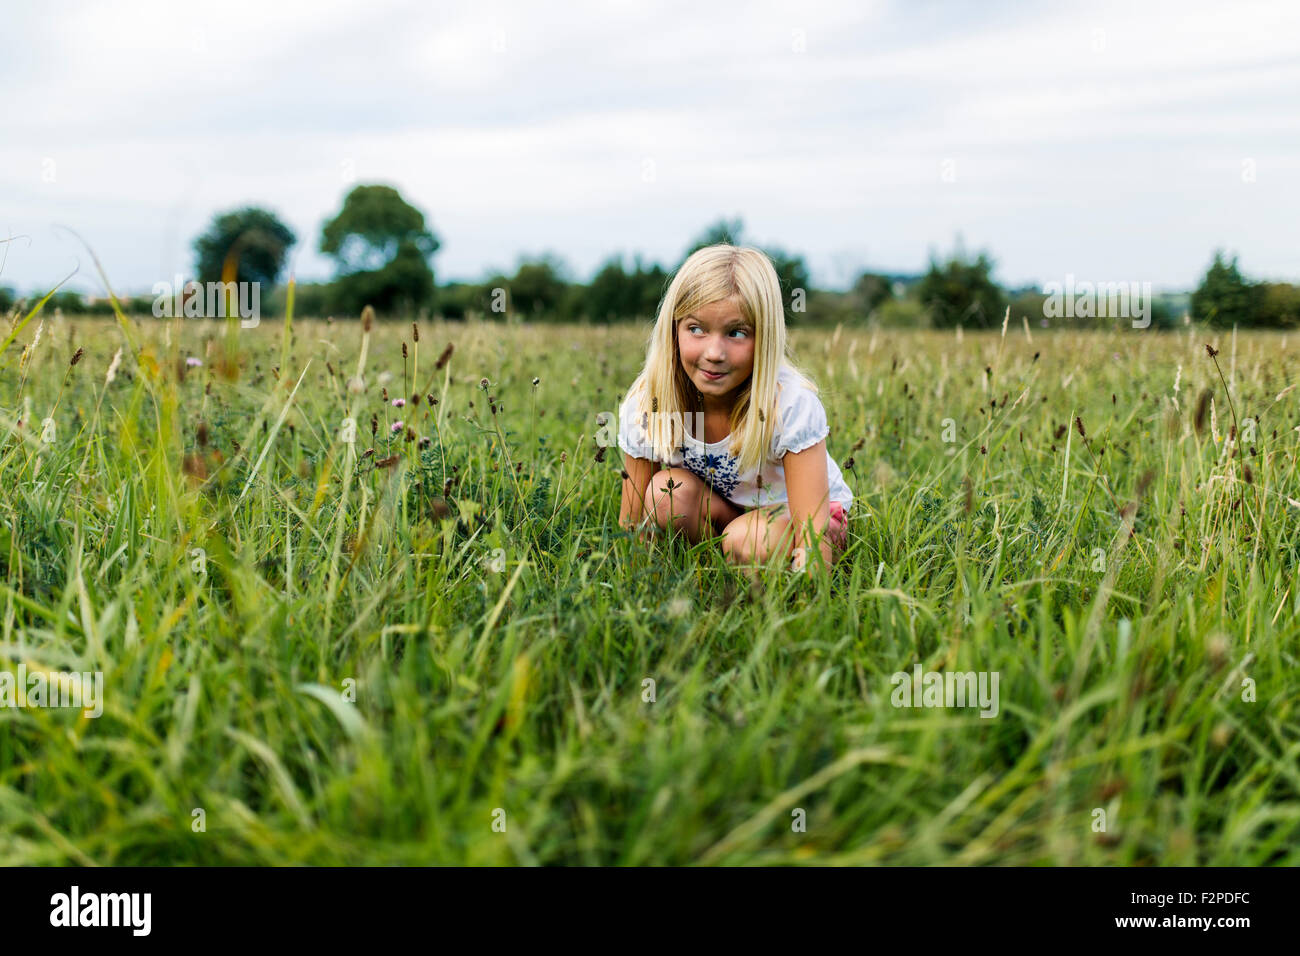 Portrait of girl crouching on a meadow - Stock Image